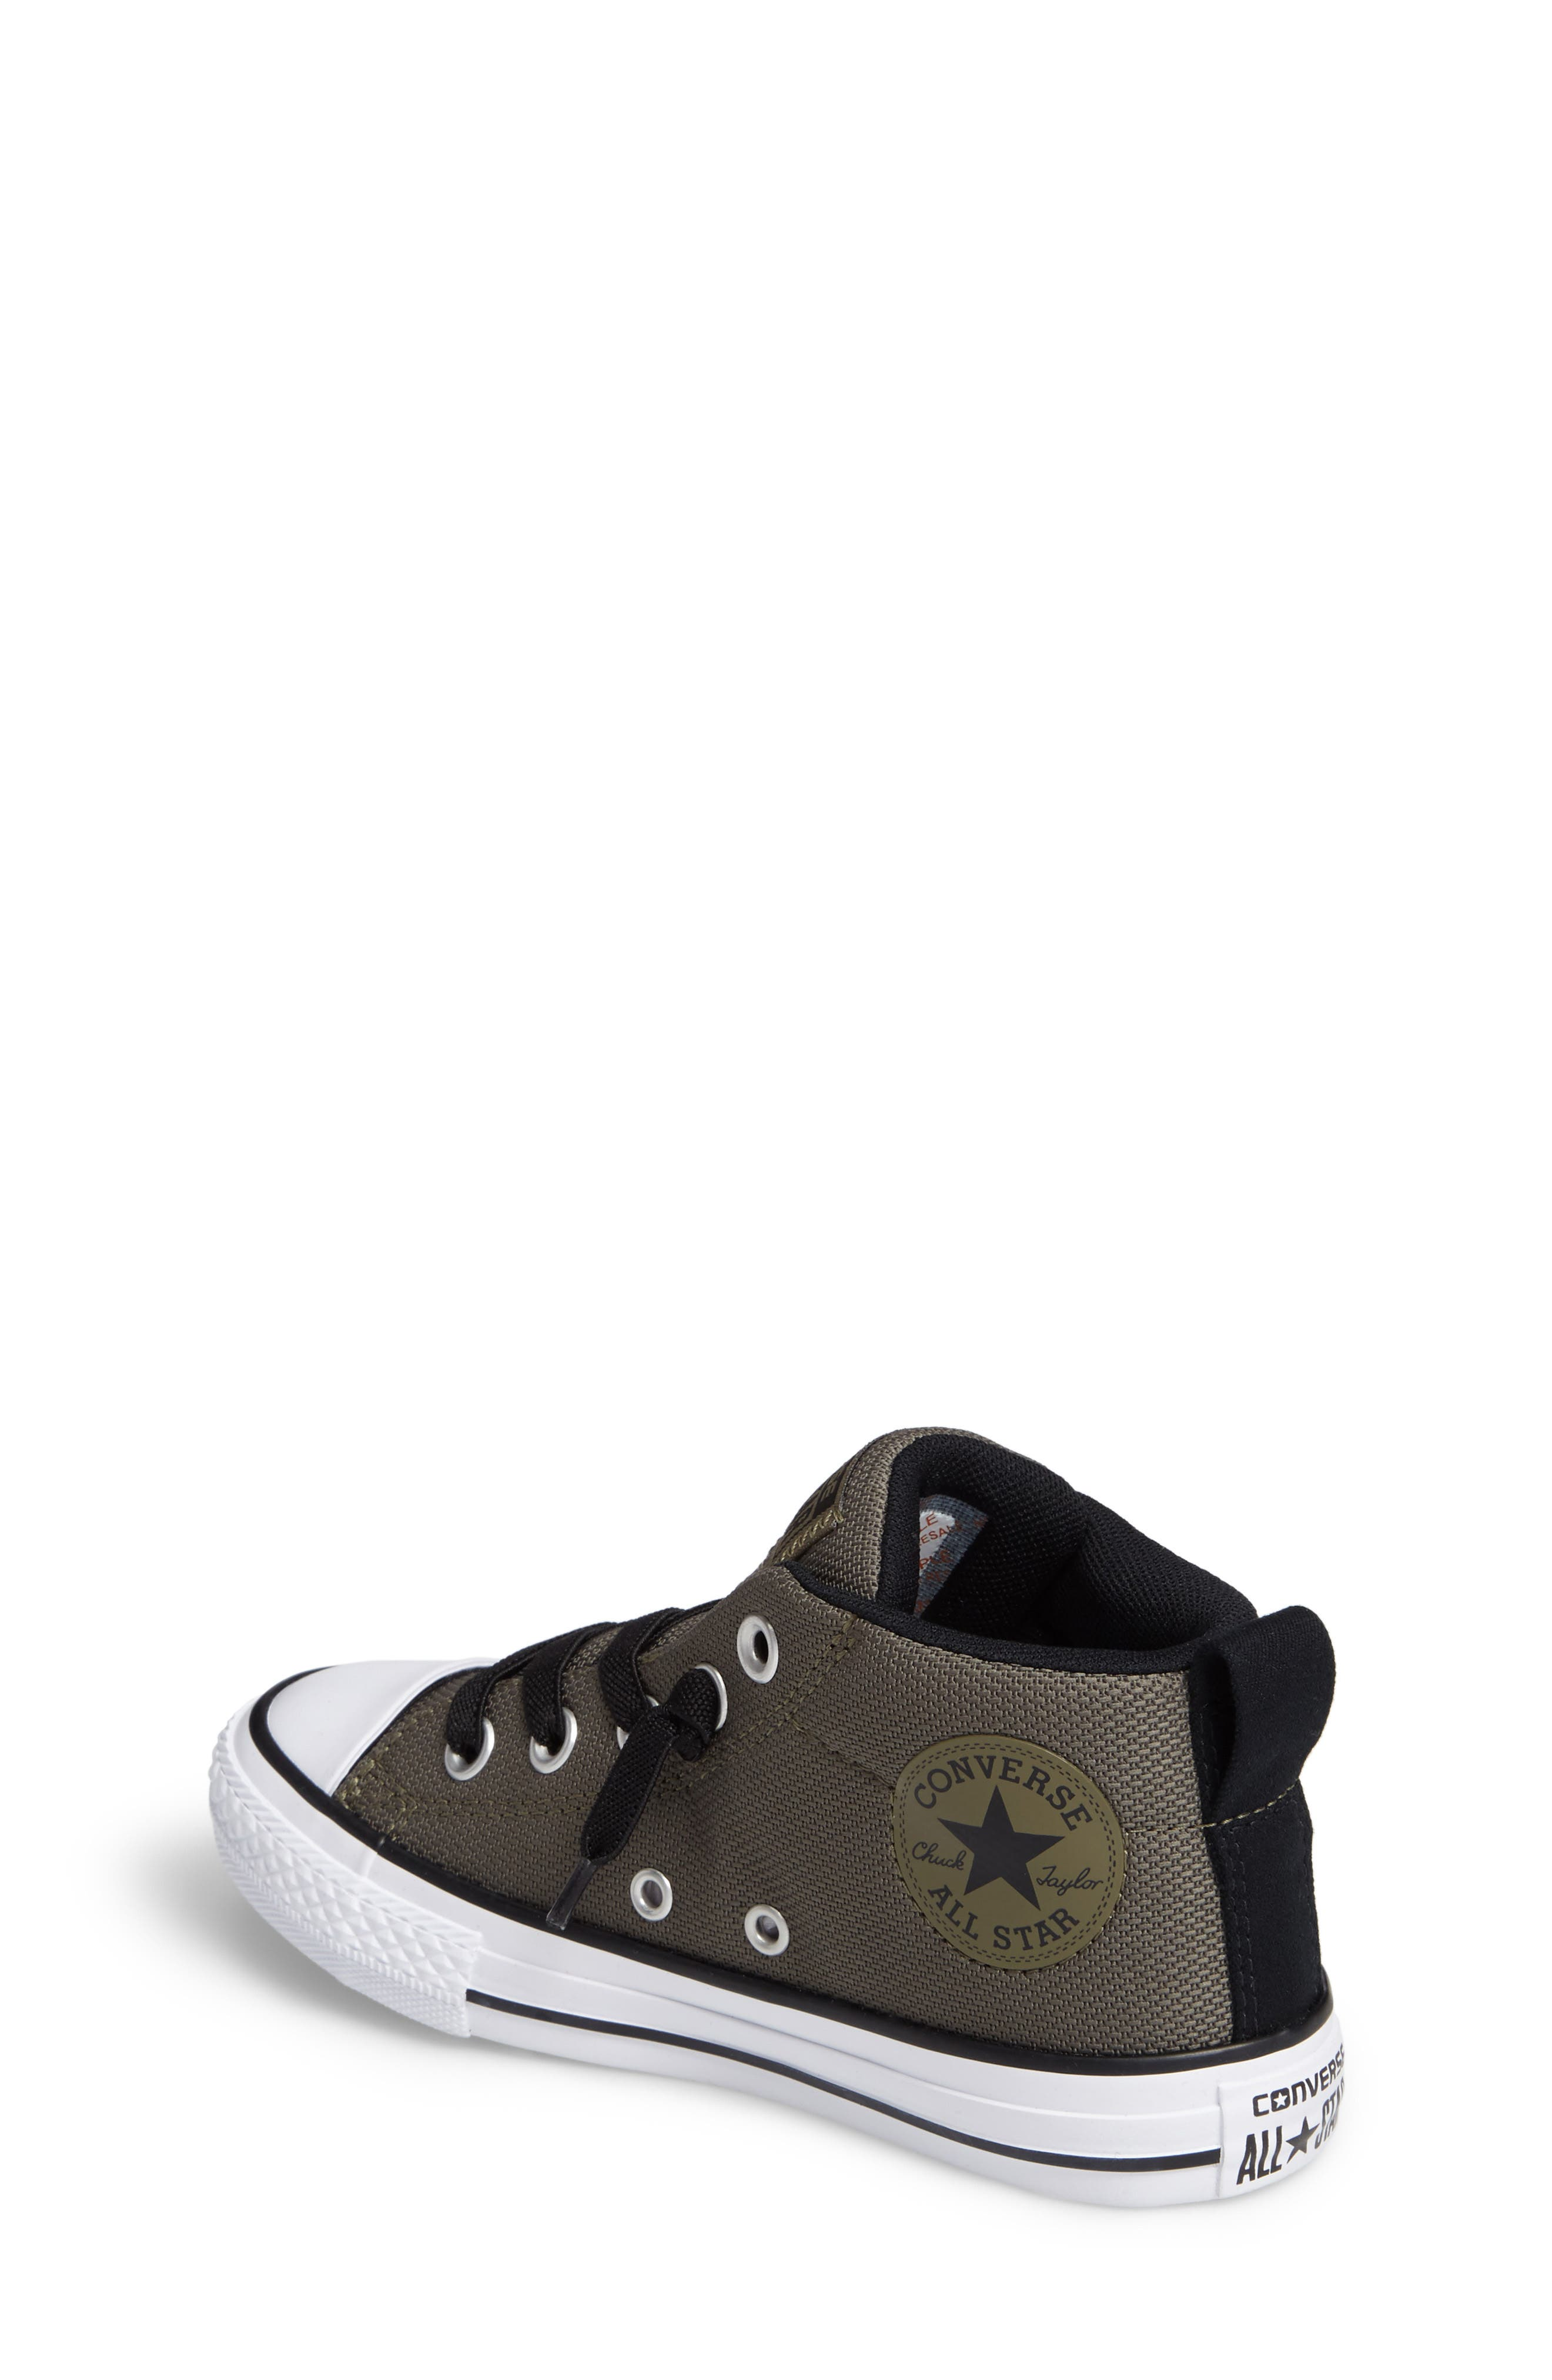 Chuck Taylor<sup>®</sup> All Star<sup>®</sup> Basket Weave Street Mid Sneaker,                             Alternate thumbnail 2, color,                             342